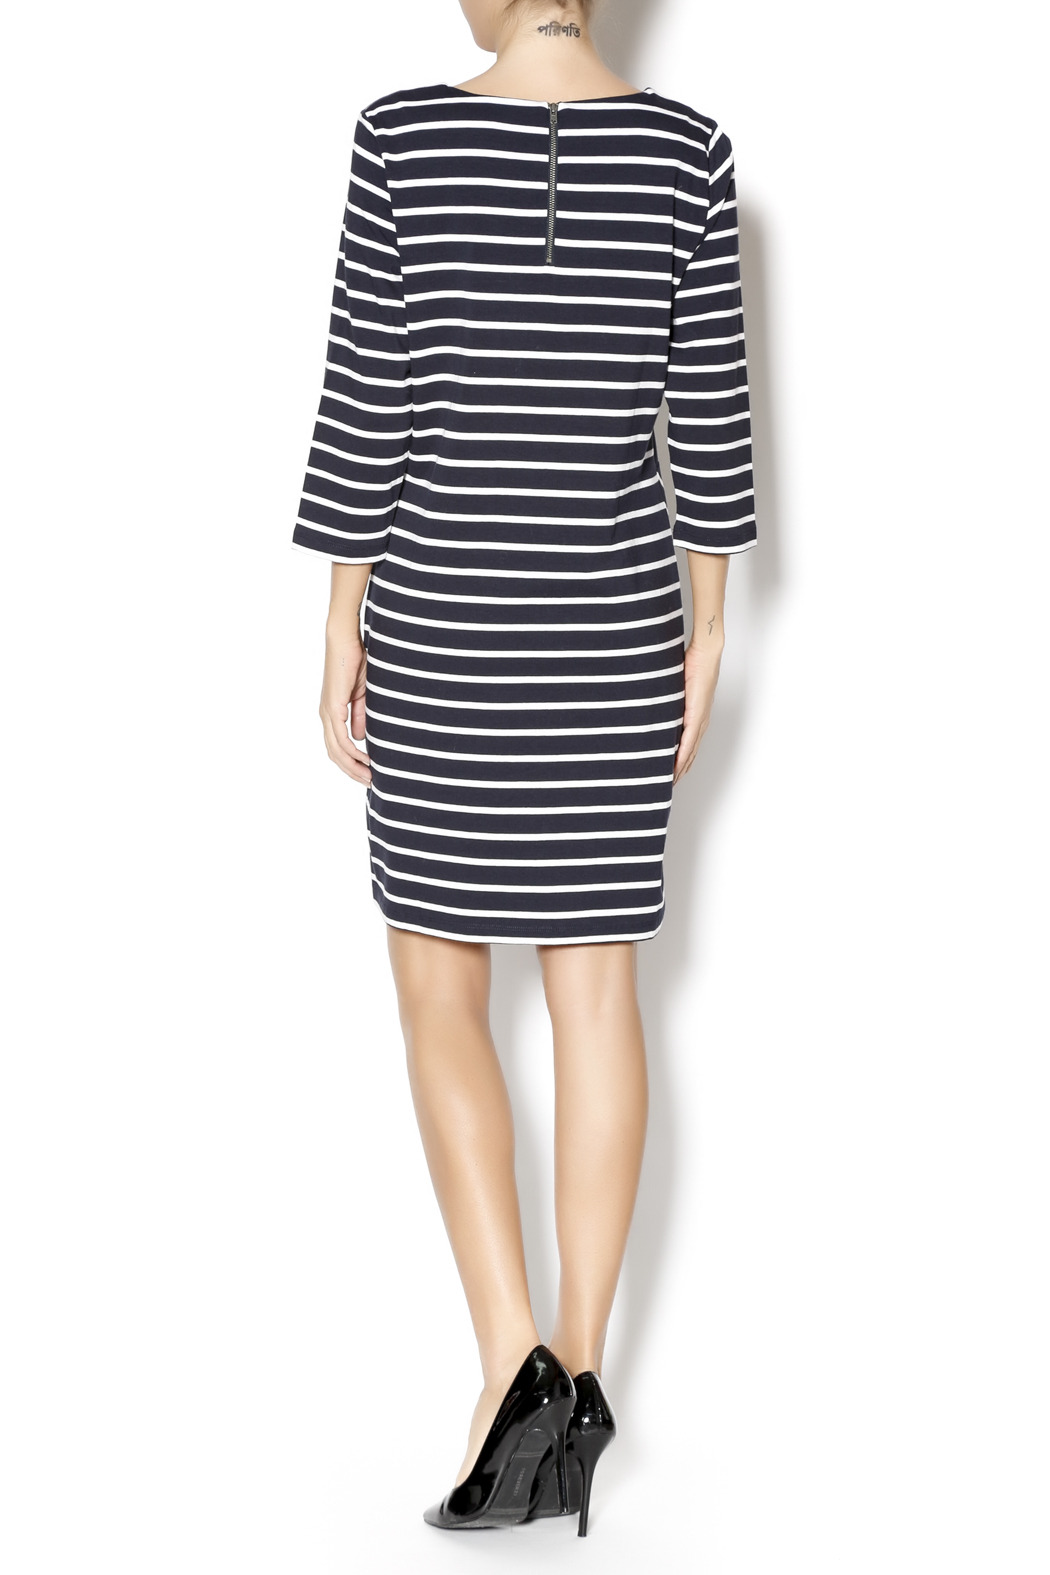 Yest Navy Stripes Dress - Side Cropped Image